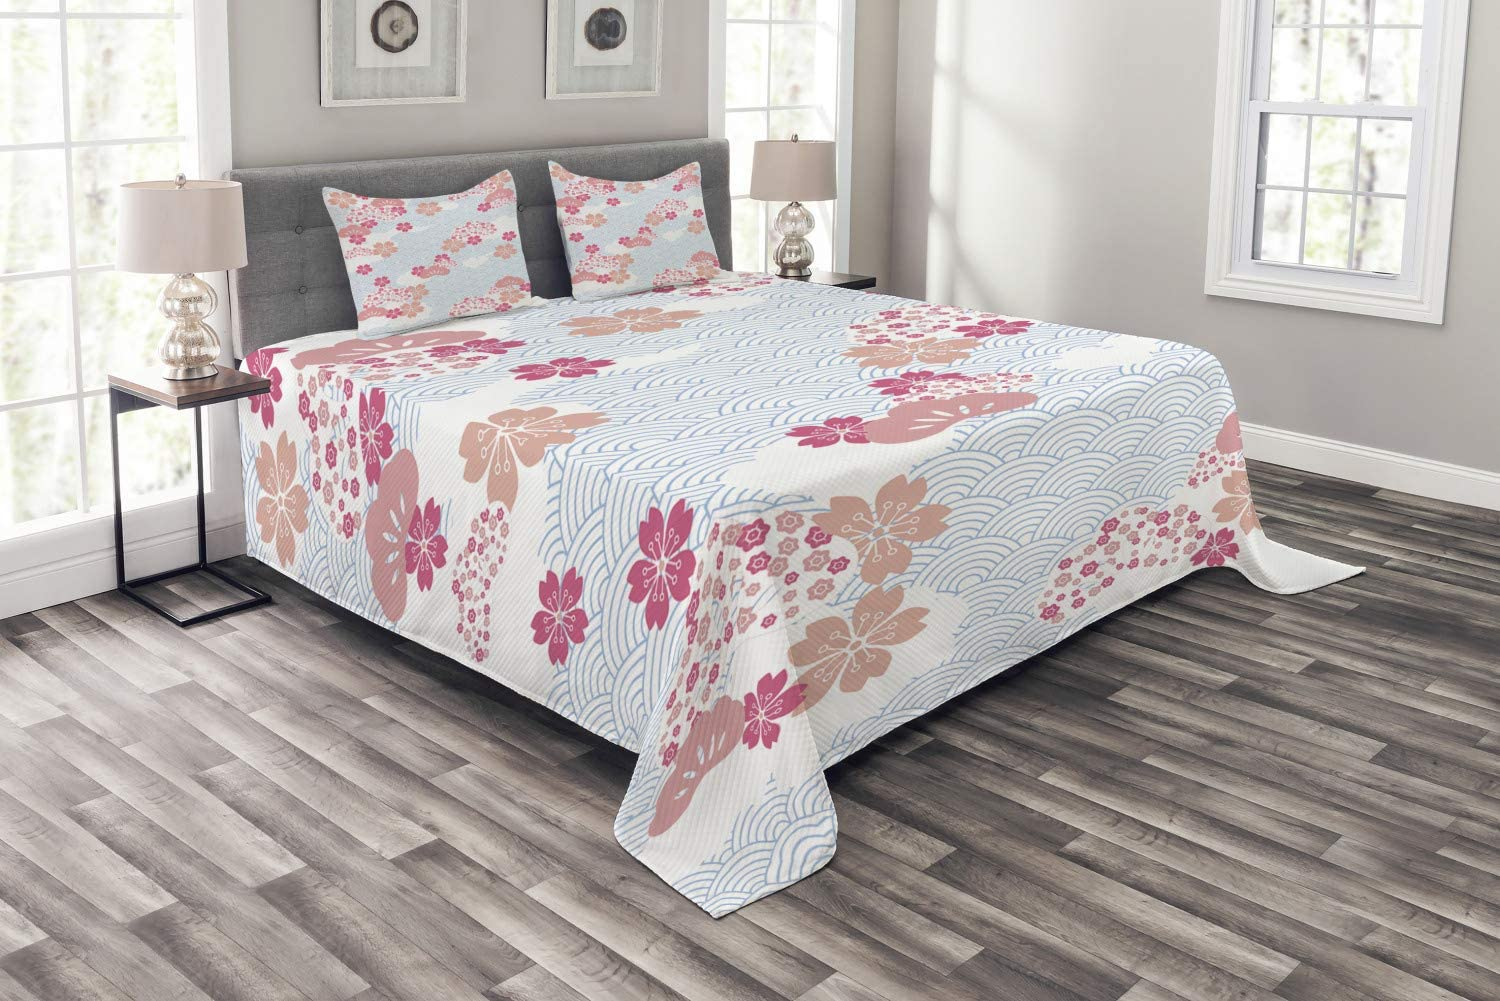 Ambesonne Japanese Bedspread, Squama Pattern with Cherry Blossom Land of The Rising Sun Pattern, Decorative Quilted 3 Piece Coverlet Set with 2 Pillow Shams, Queen Size, Dark Coral